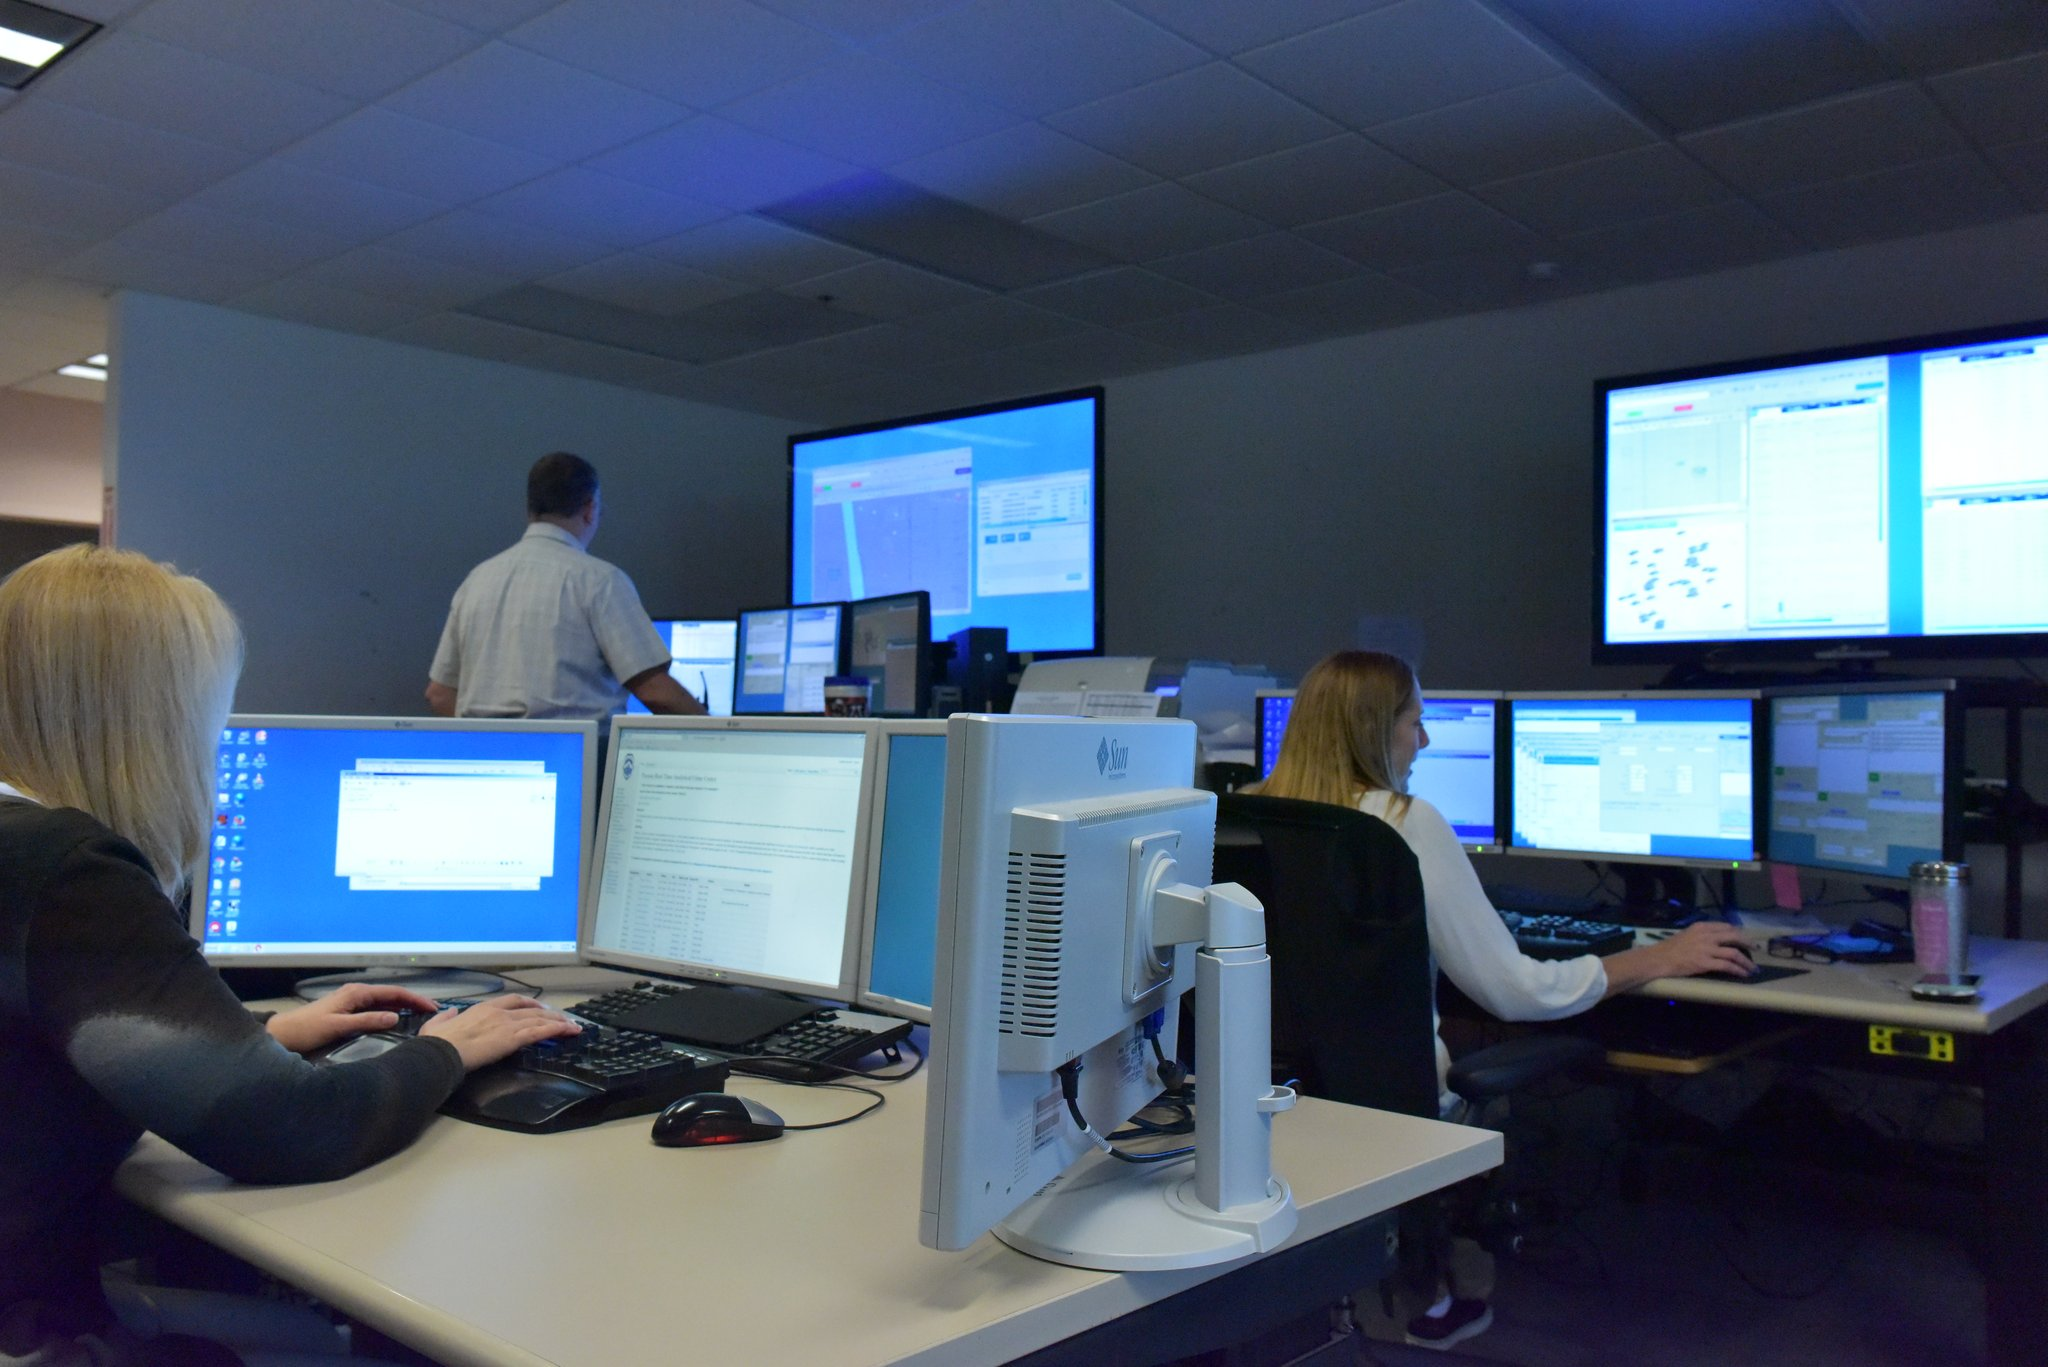 Tucson Police staff sit at work stations, each with multiple computer monitors.